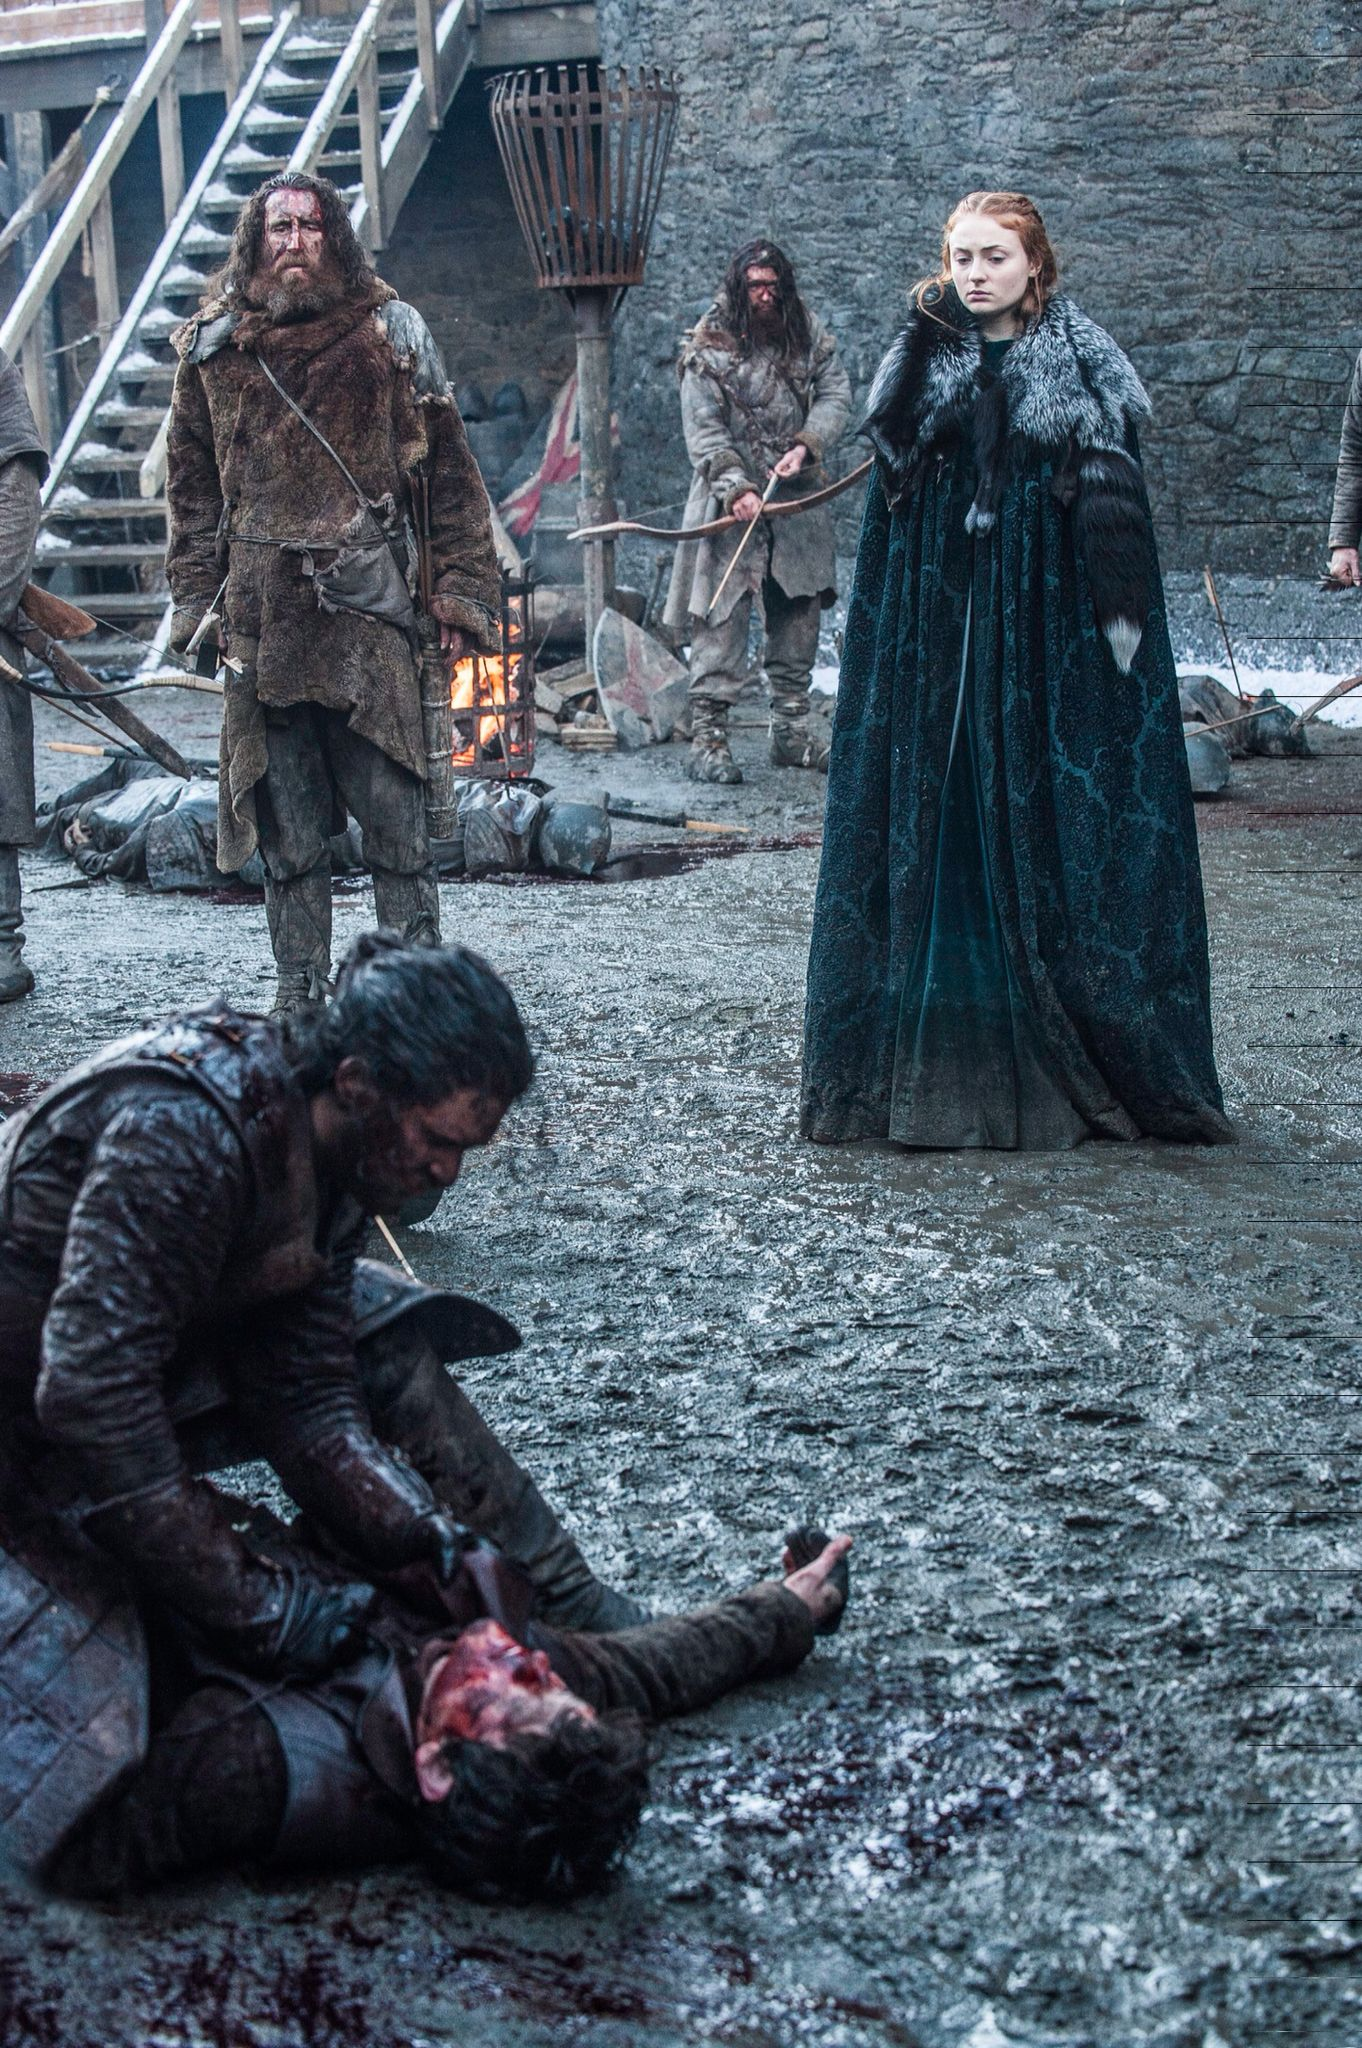 Game Of Thrones Season 6 Episode 9 Battle Bastards Ramsay Deserved Worse Than He Got But Thank The Stars HE IS GONE